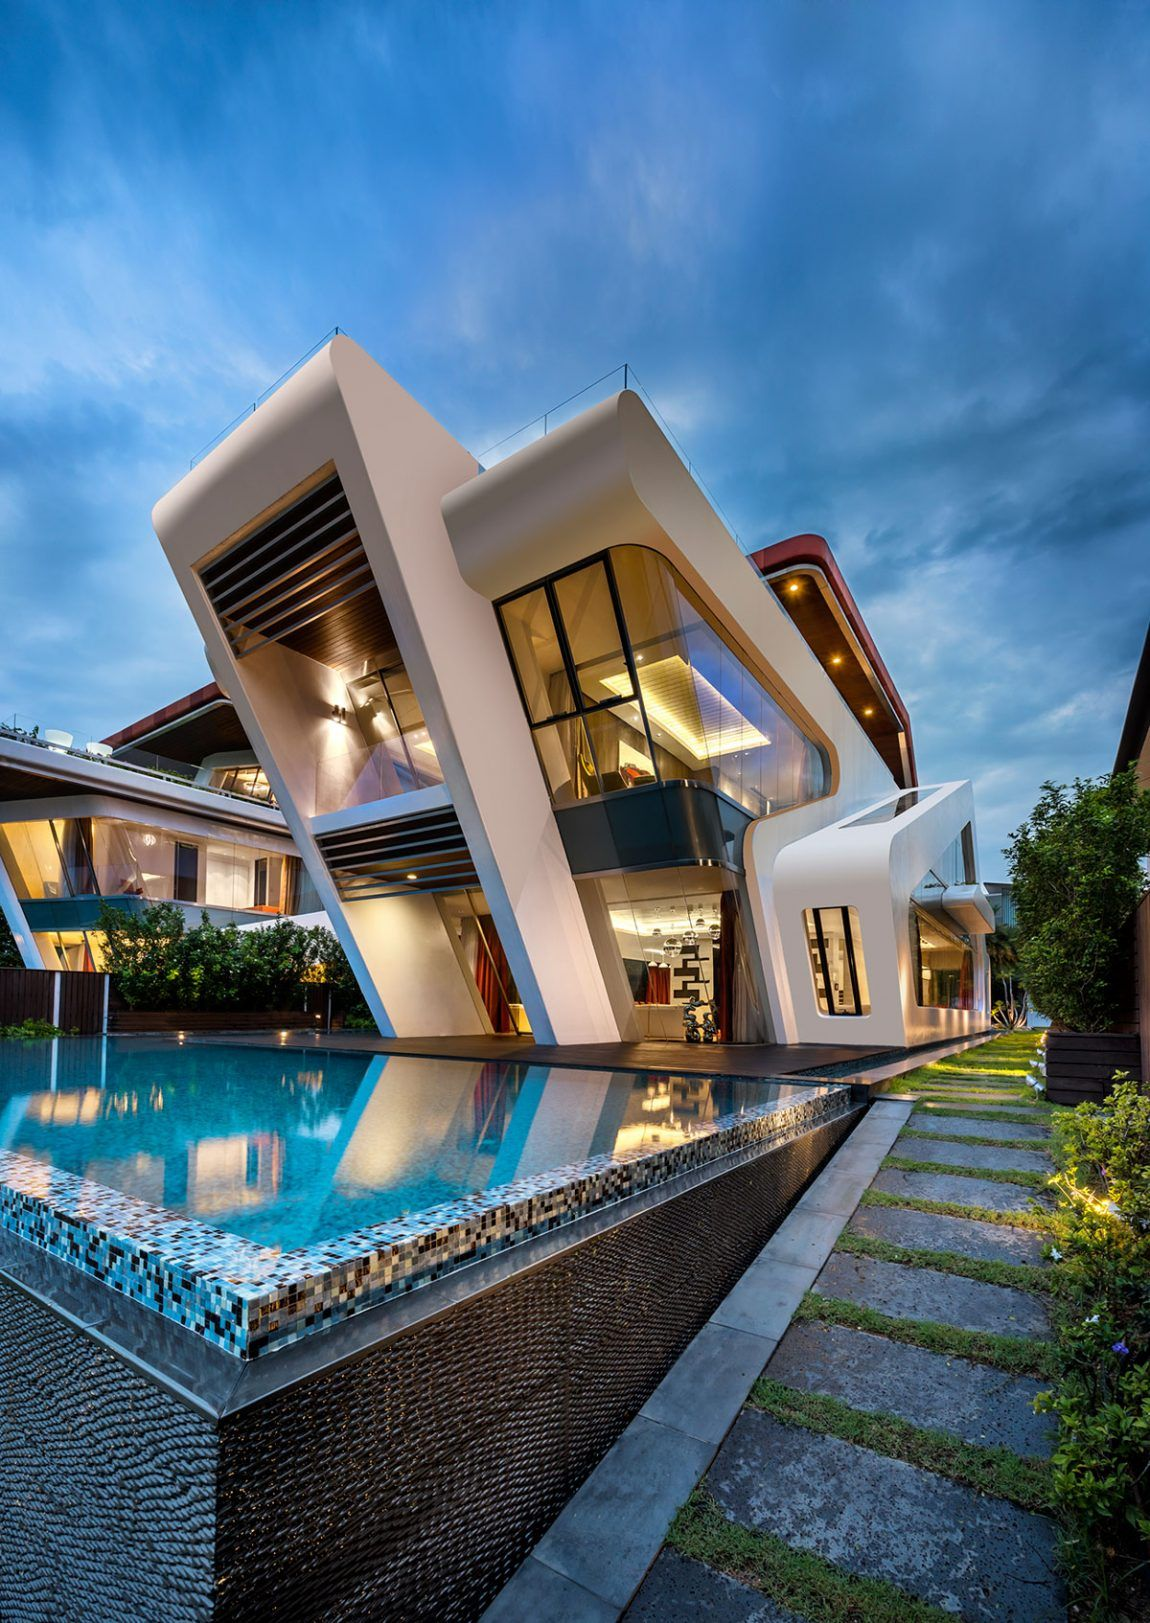 Mercurio design lab create a modern villa in singapore Architectural home builders